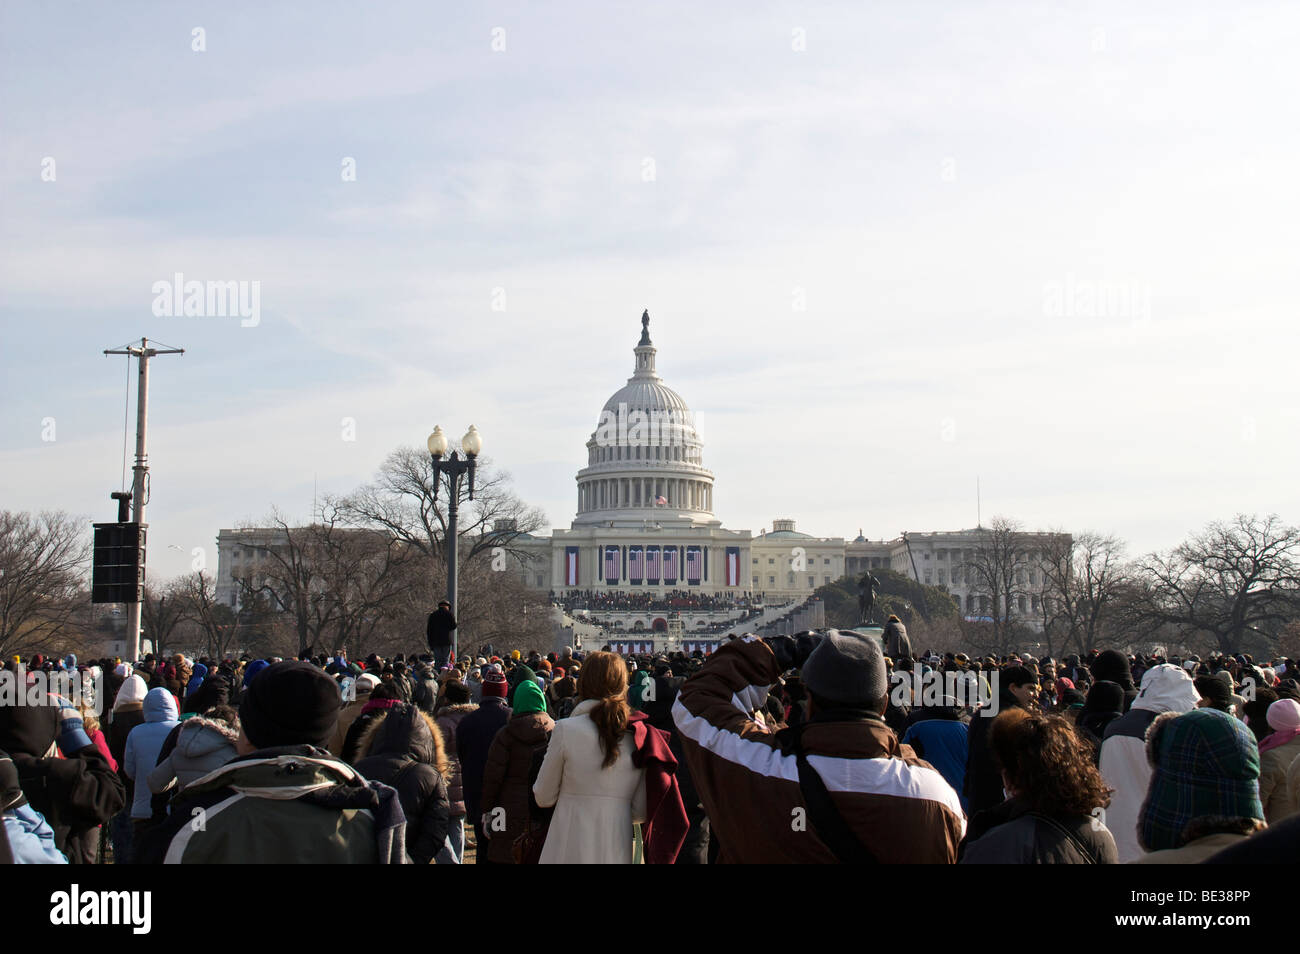 US Capitol building and crowd on National Mall. Inauguration Day 2009. Washington DC - Stock Image